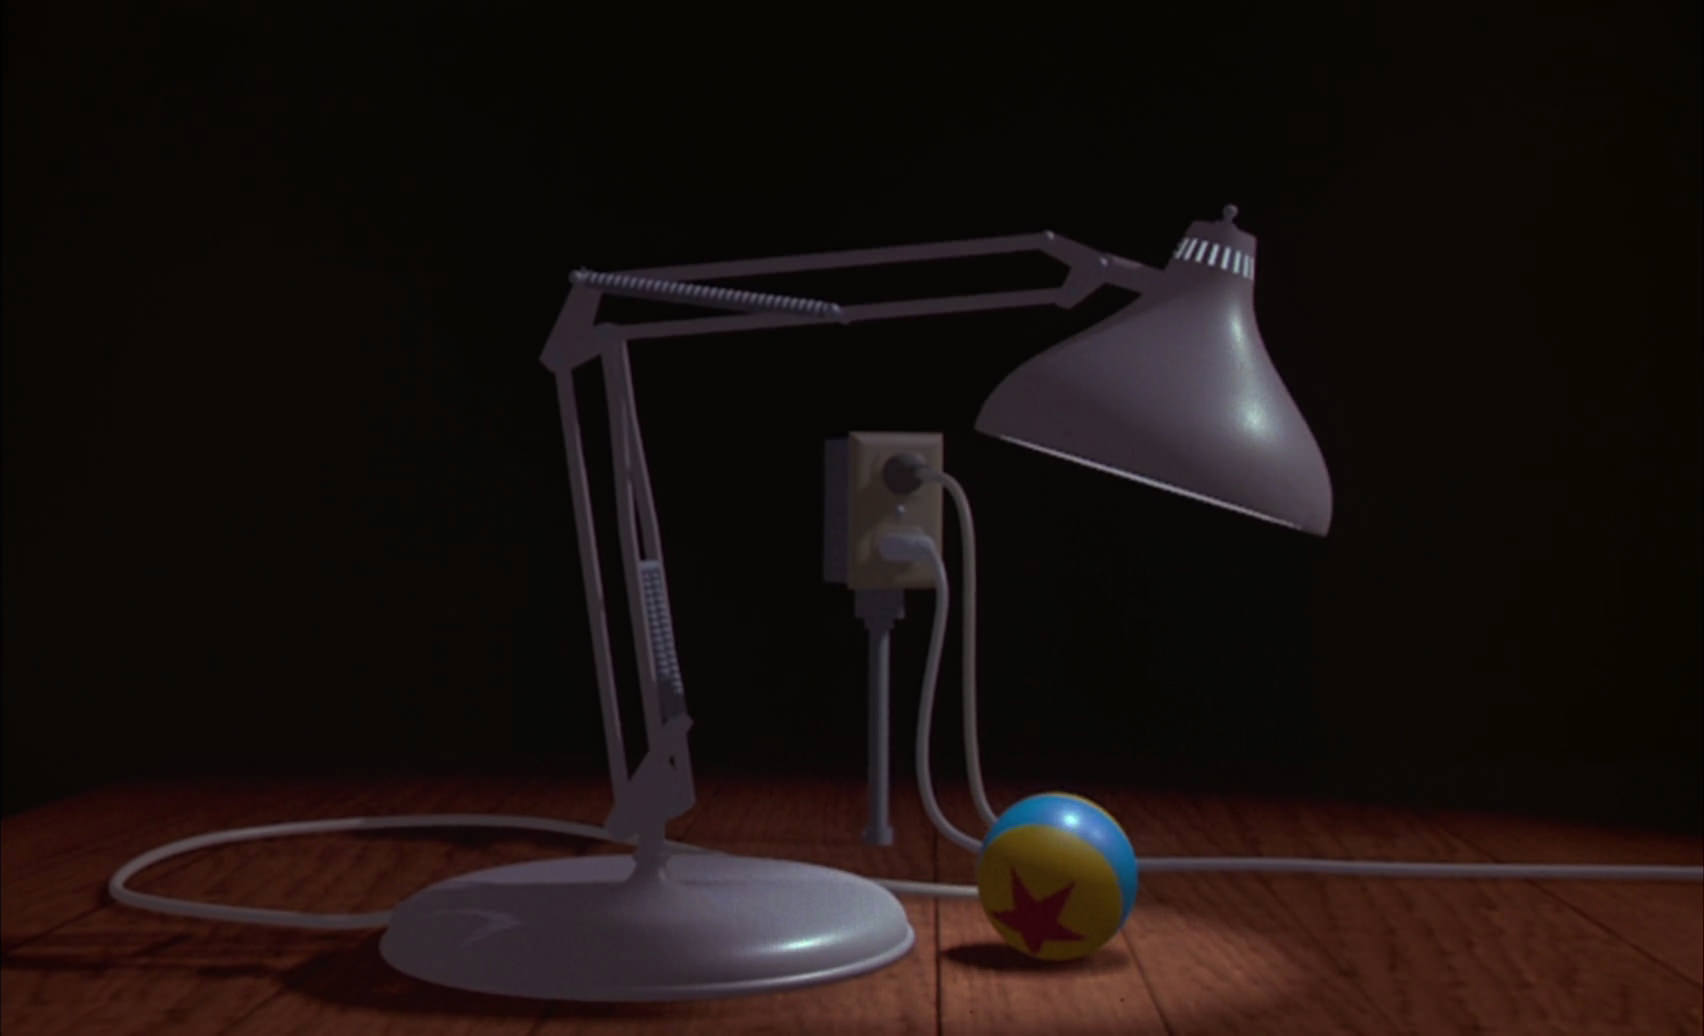 luxo jr Luxo jr squeaking is a pixar's luxo jr sound effects from tv shows, movies and others tv shows chiro and friends (heard once in hide and seek when kuri tries to hide in a bucket), sesame street (heard once in &quotluxo jr.